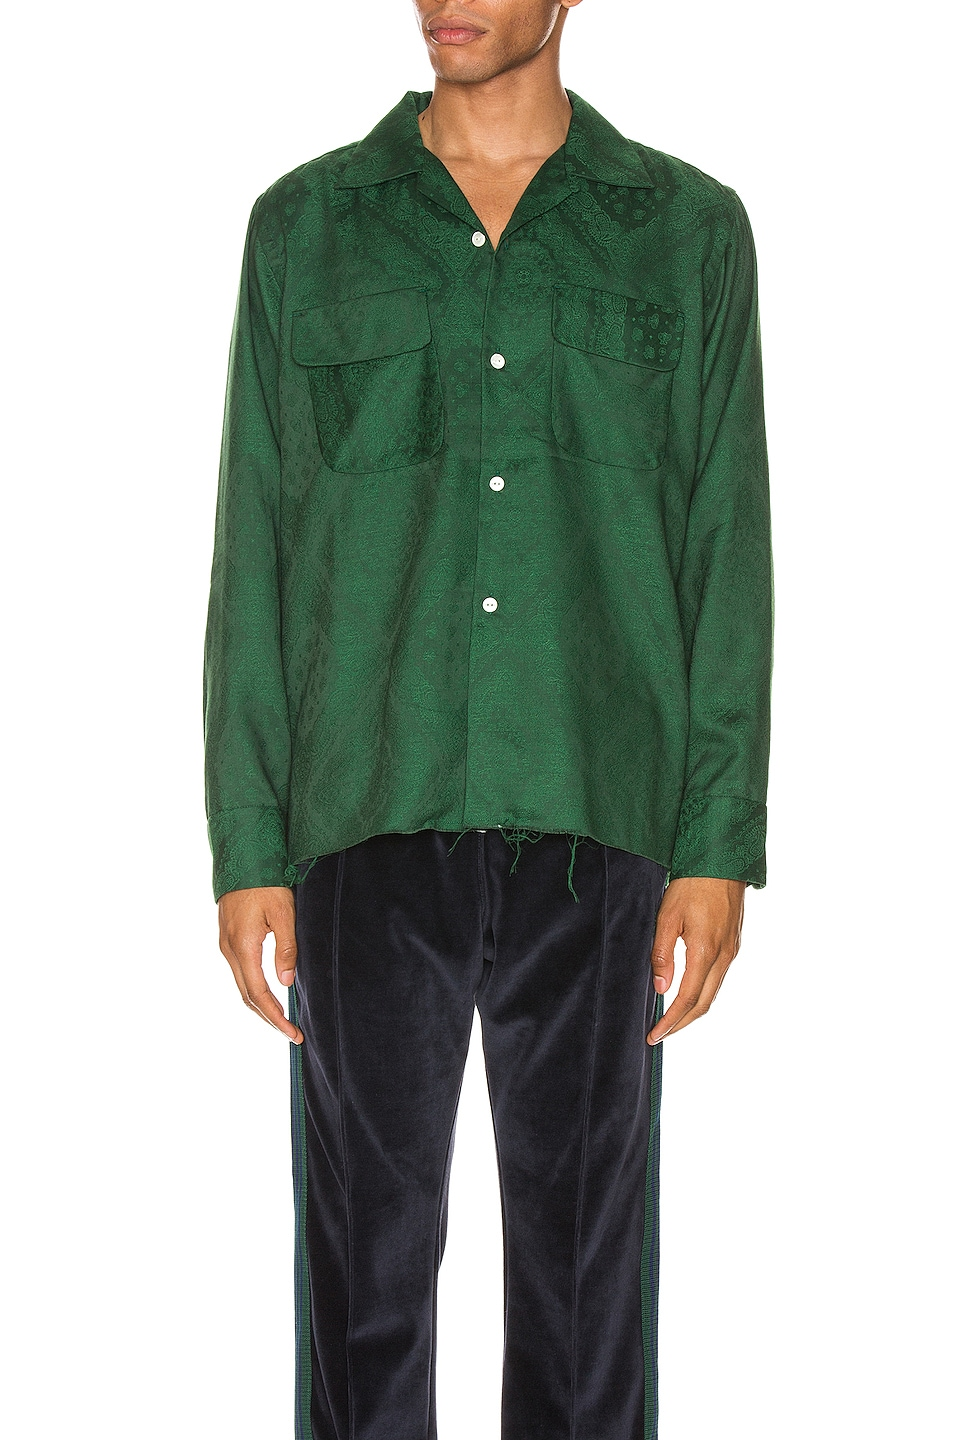 Image 1 of Needles Cut-Off Bottom Classic Shirt in Green